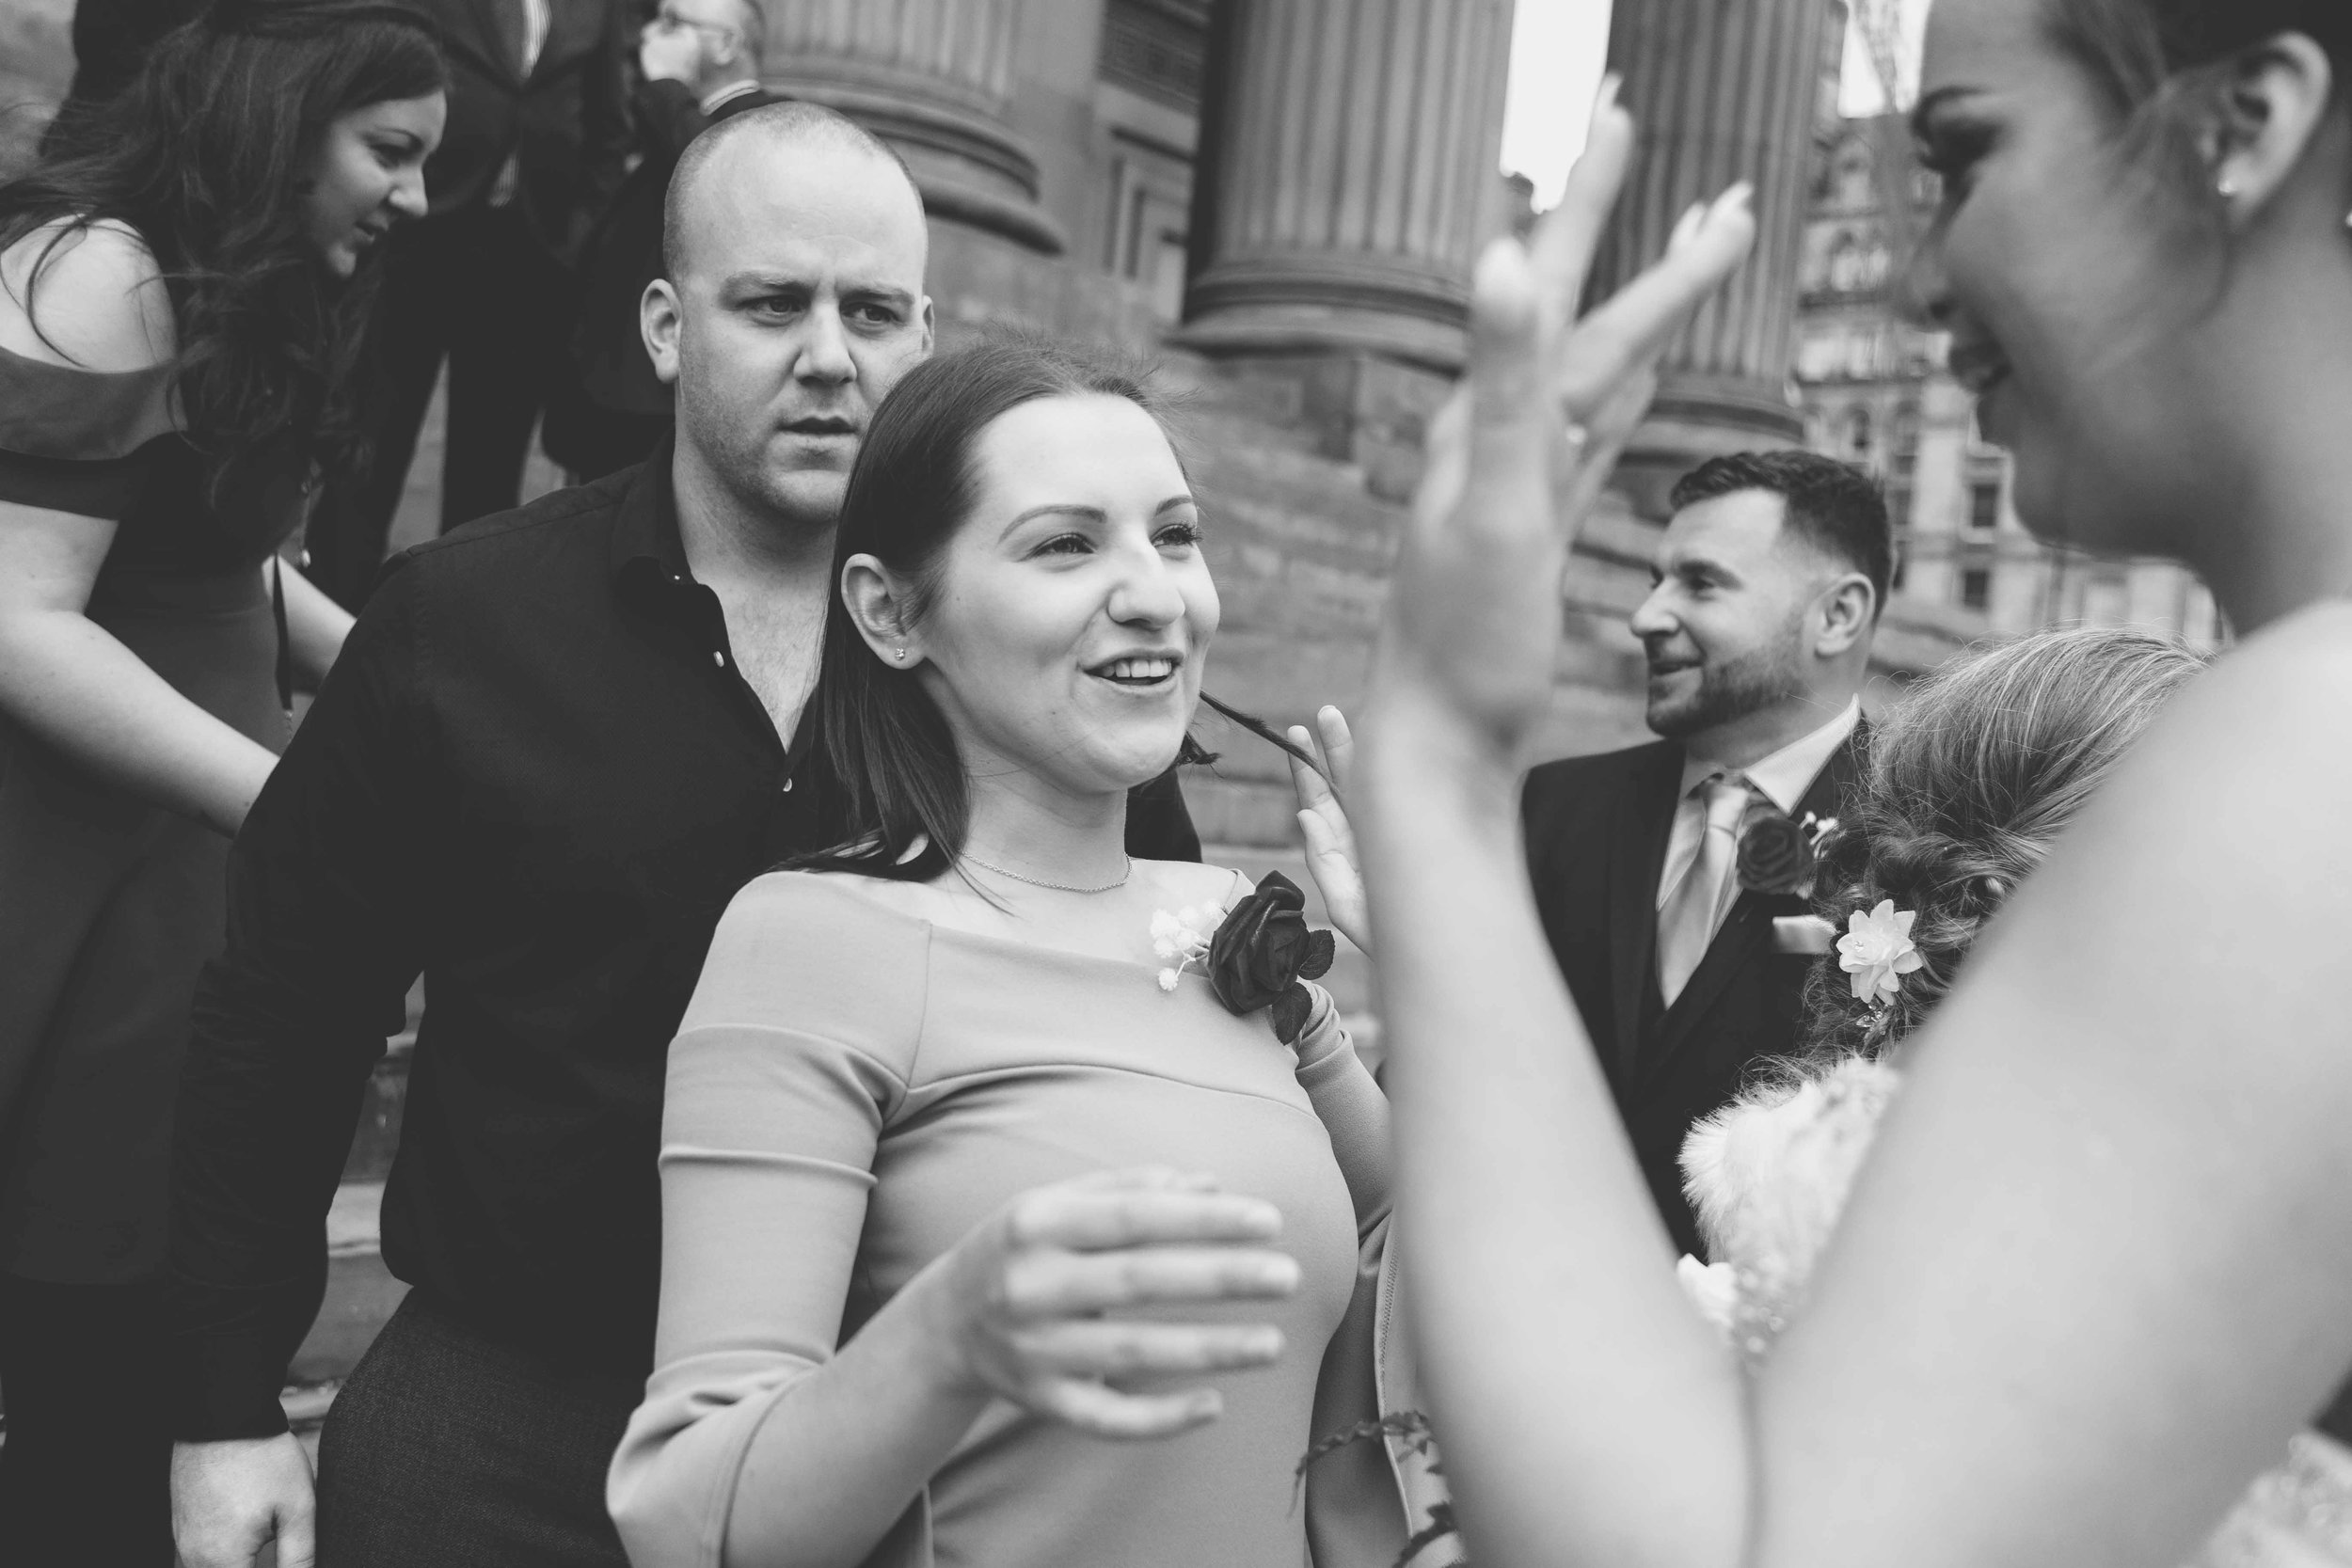 wedding-photos-at-st-georges-hall-liverpool (46 of 122).jpg